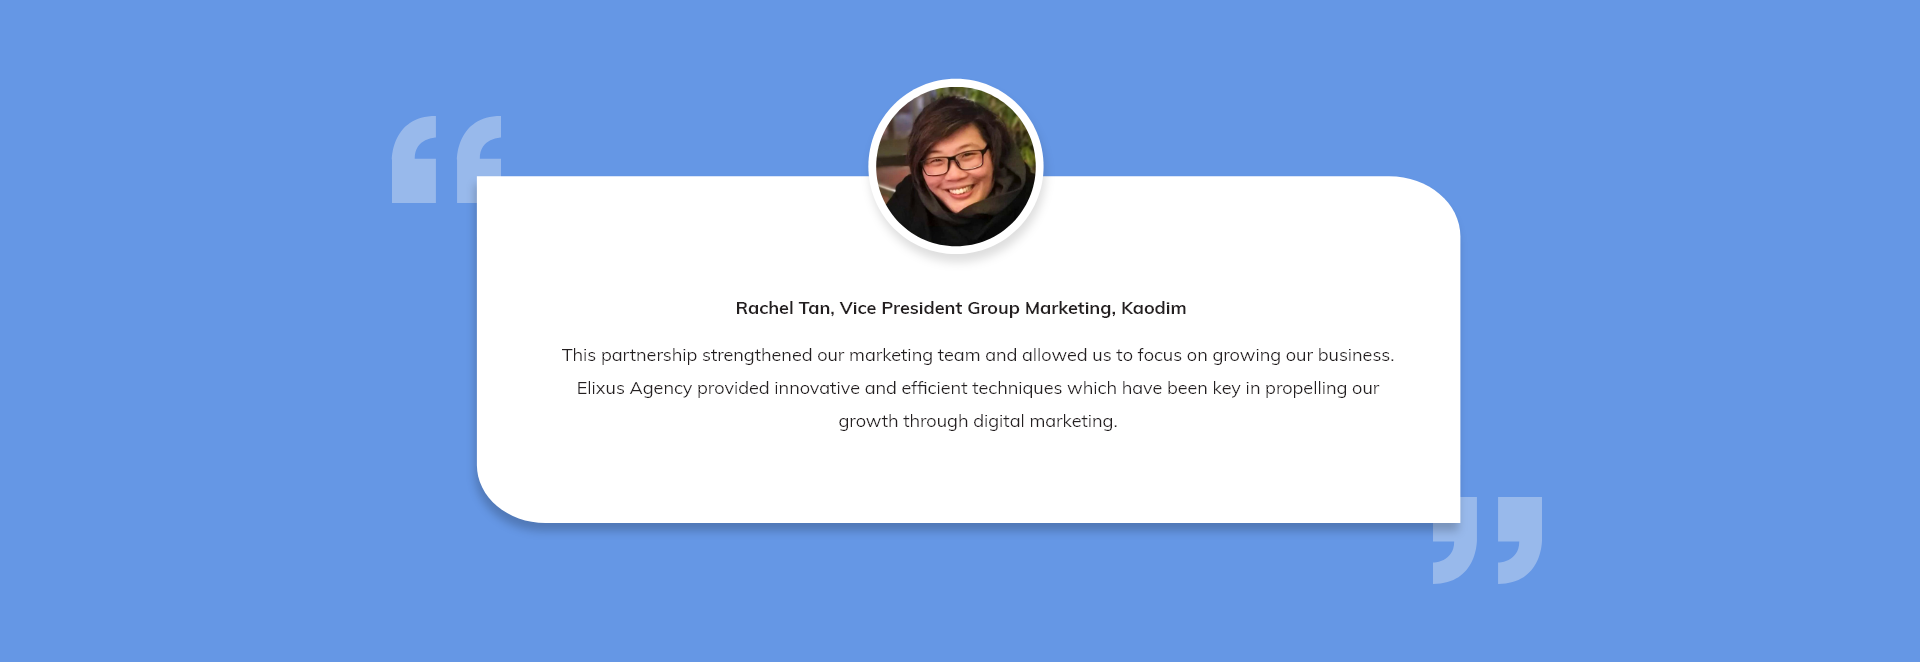 kaodim testimonials - Elixus Agency provided innovative and efficient techniques which have been key in propelling our growth through digital marketing